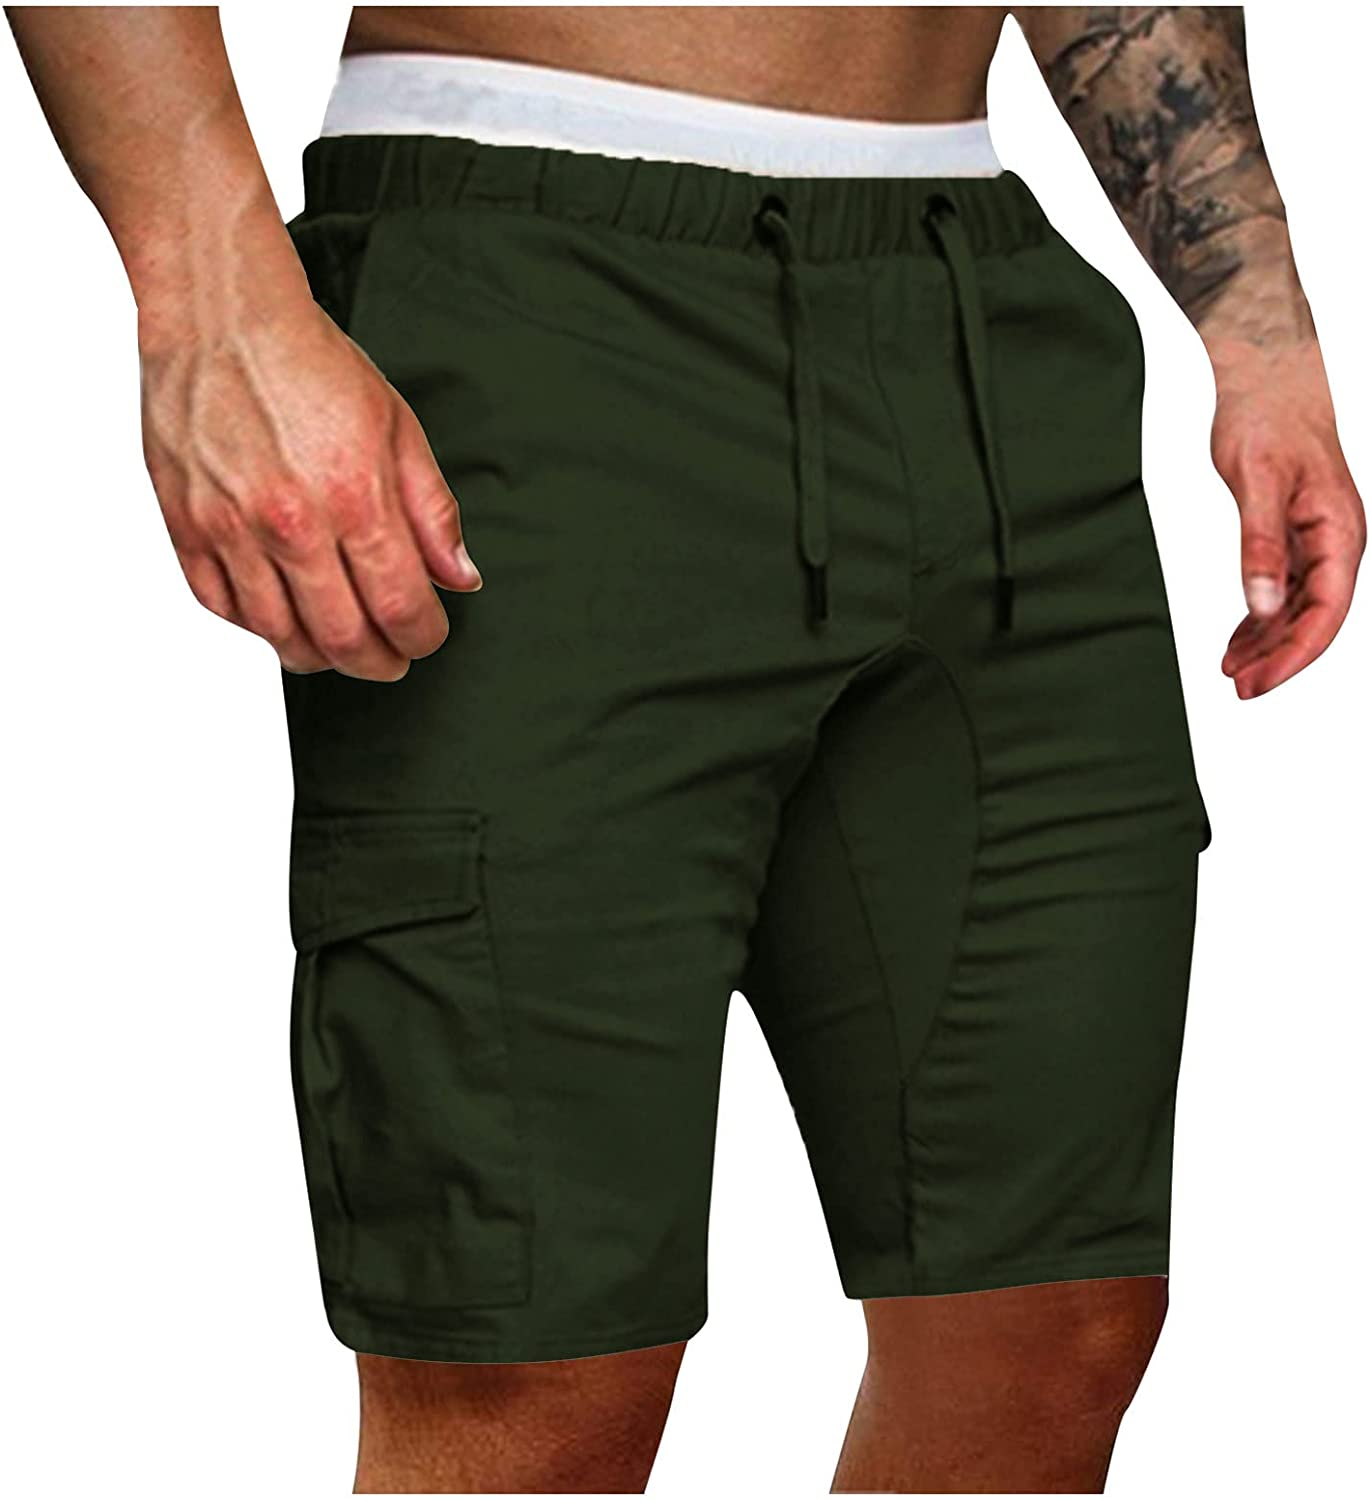 Beshion Mens Shorts Casual Stretch Elastic Waist Outdoor Lightweight Work Shorts Solid Color Lace-up with Multi Pockets